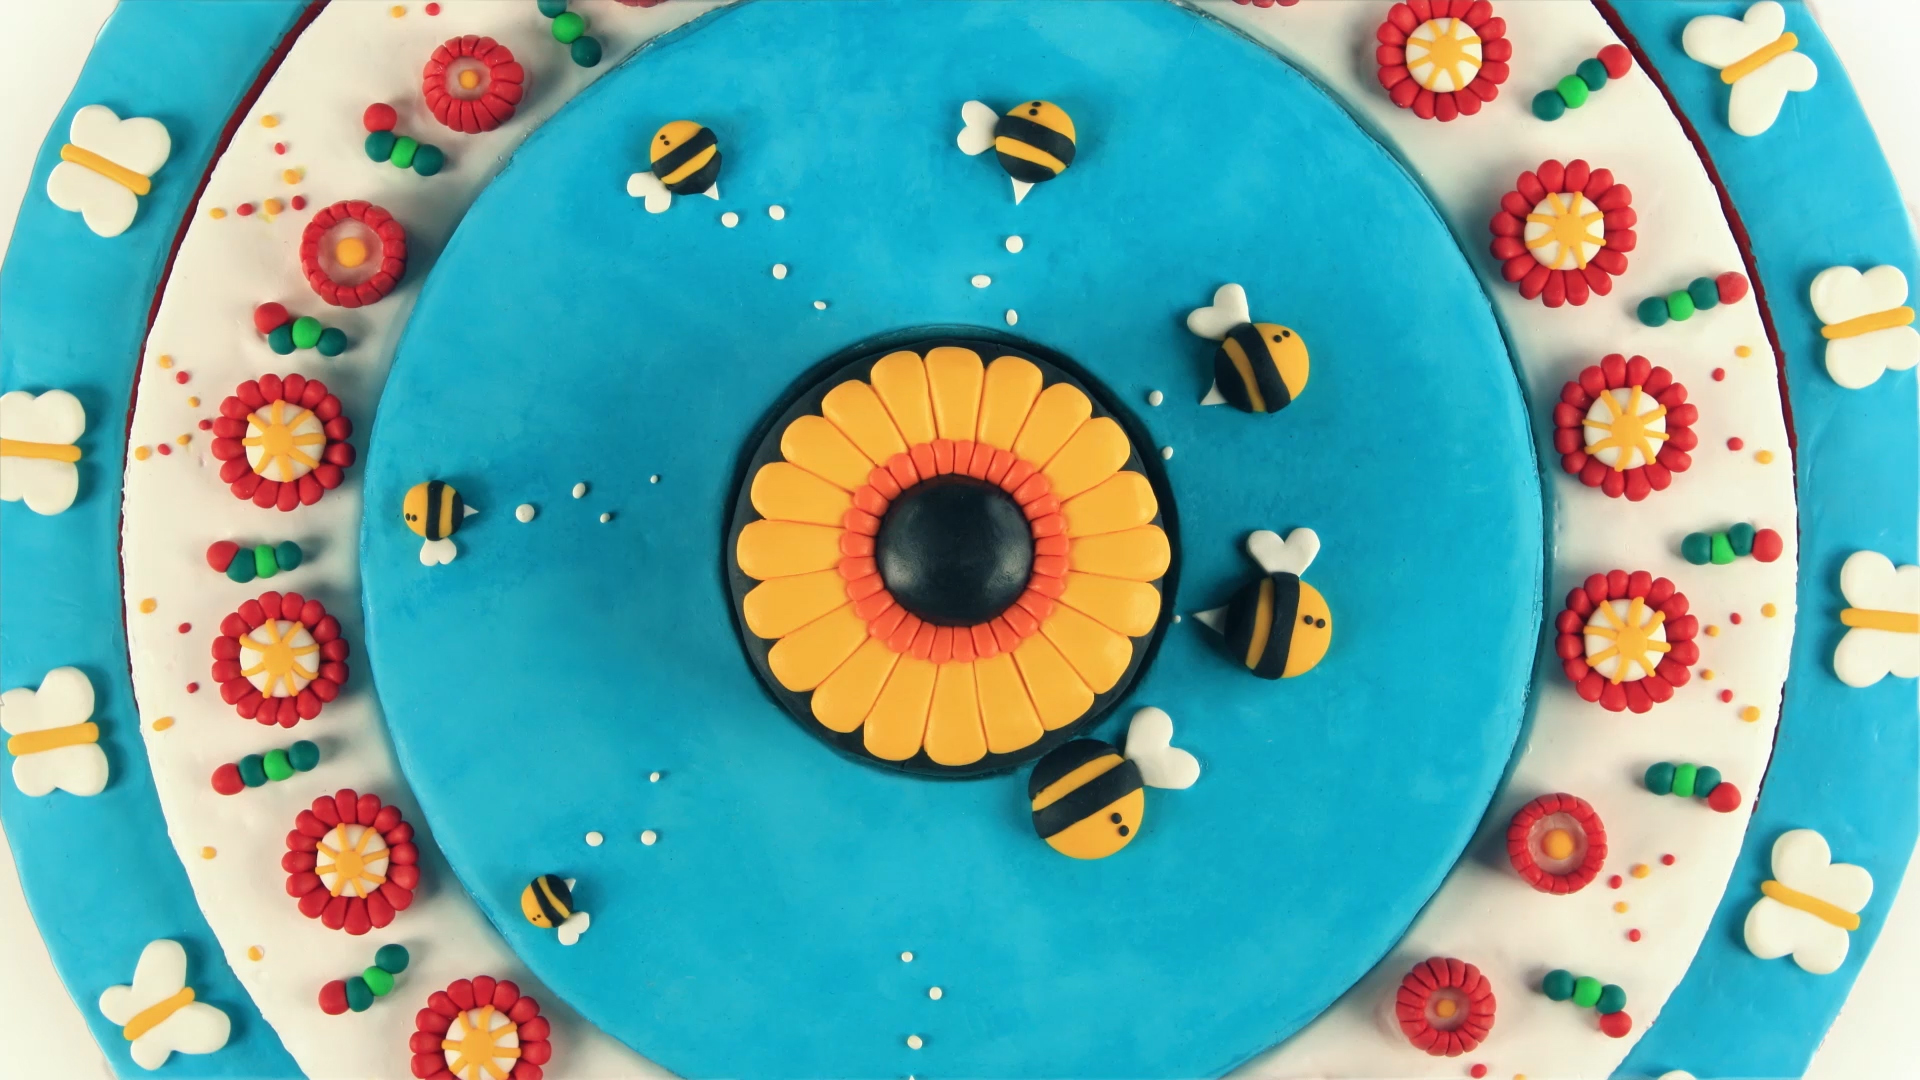 EXXON-MOBIL--THE-DOT---Young-Illustration-&-Animation-Studio-Manchester-2D,3D,-STOP-MOTION,-PAPER-CRAFT,-CLAYMATION,-zoetrope, flowers, bees, lifecycle, pollination -ANIMATION.jpg.jpg